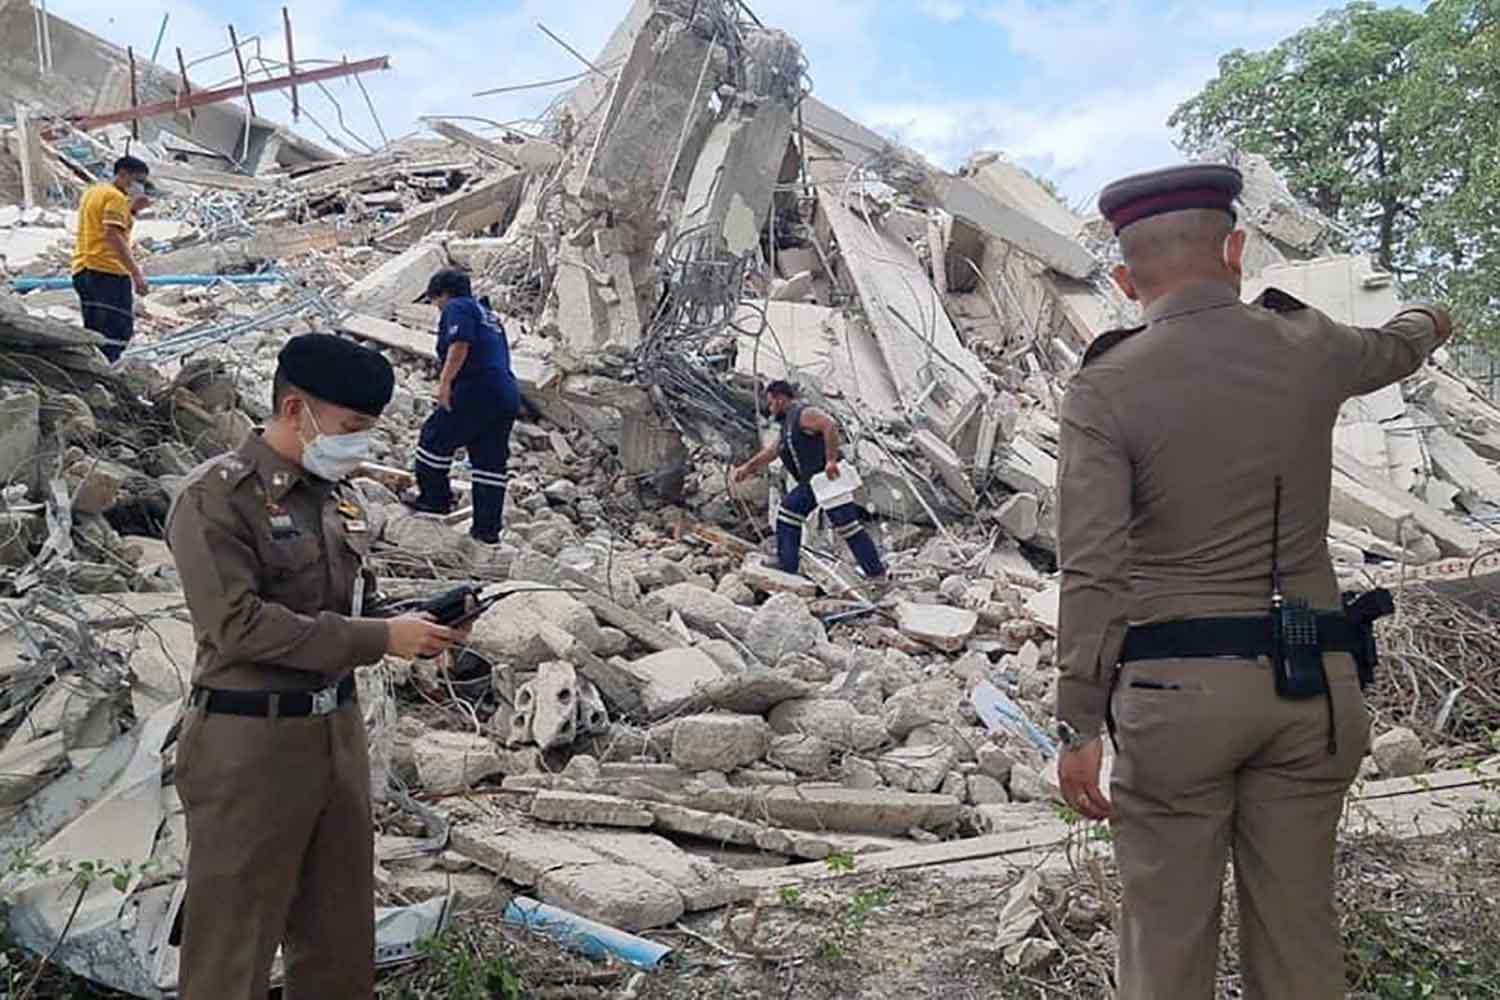 Workers injured as apartment buildings collapse